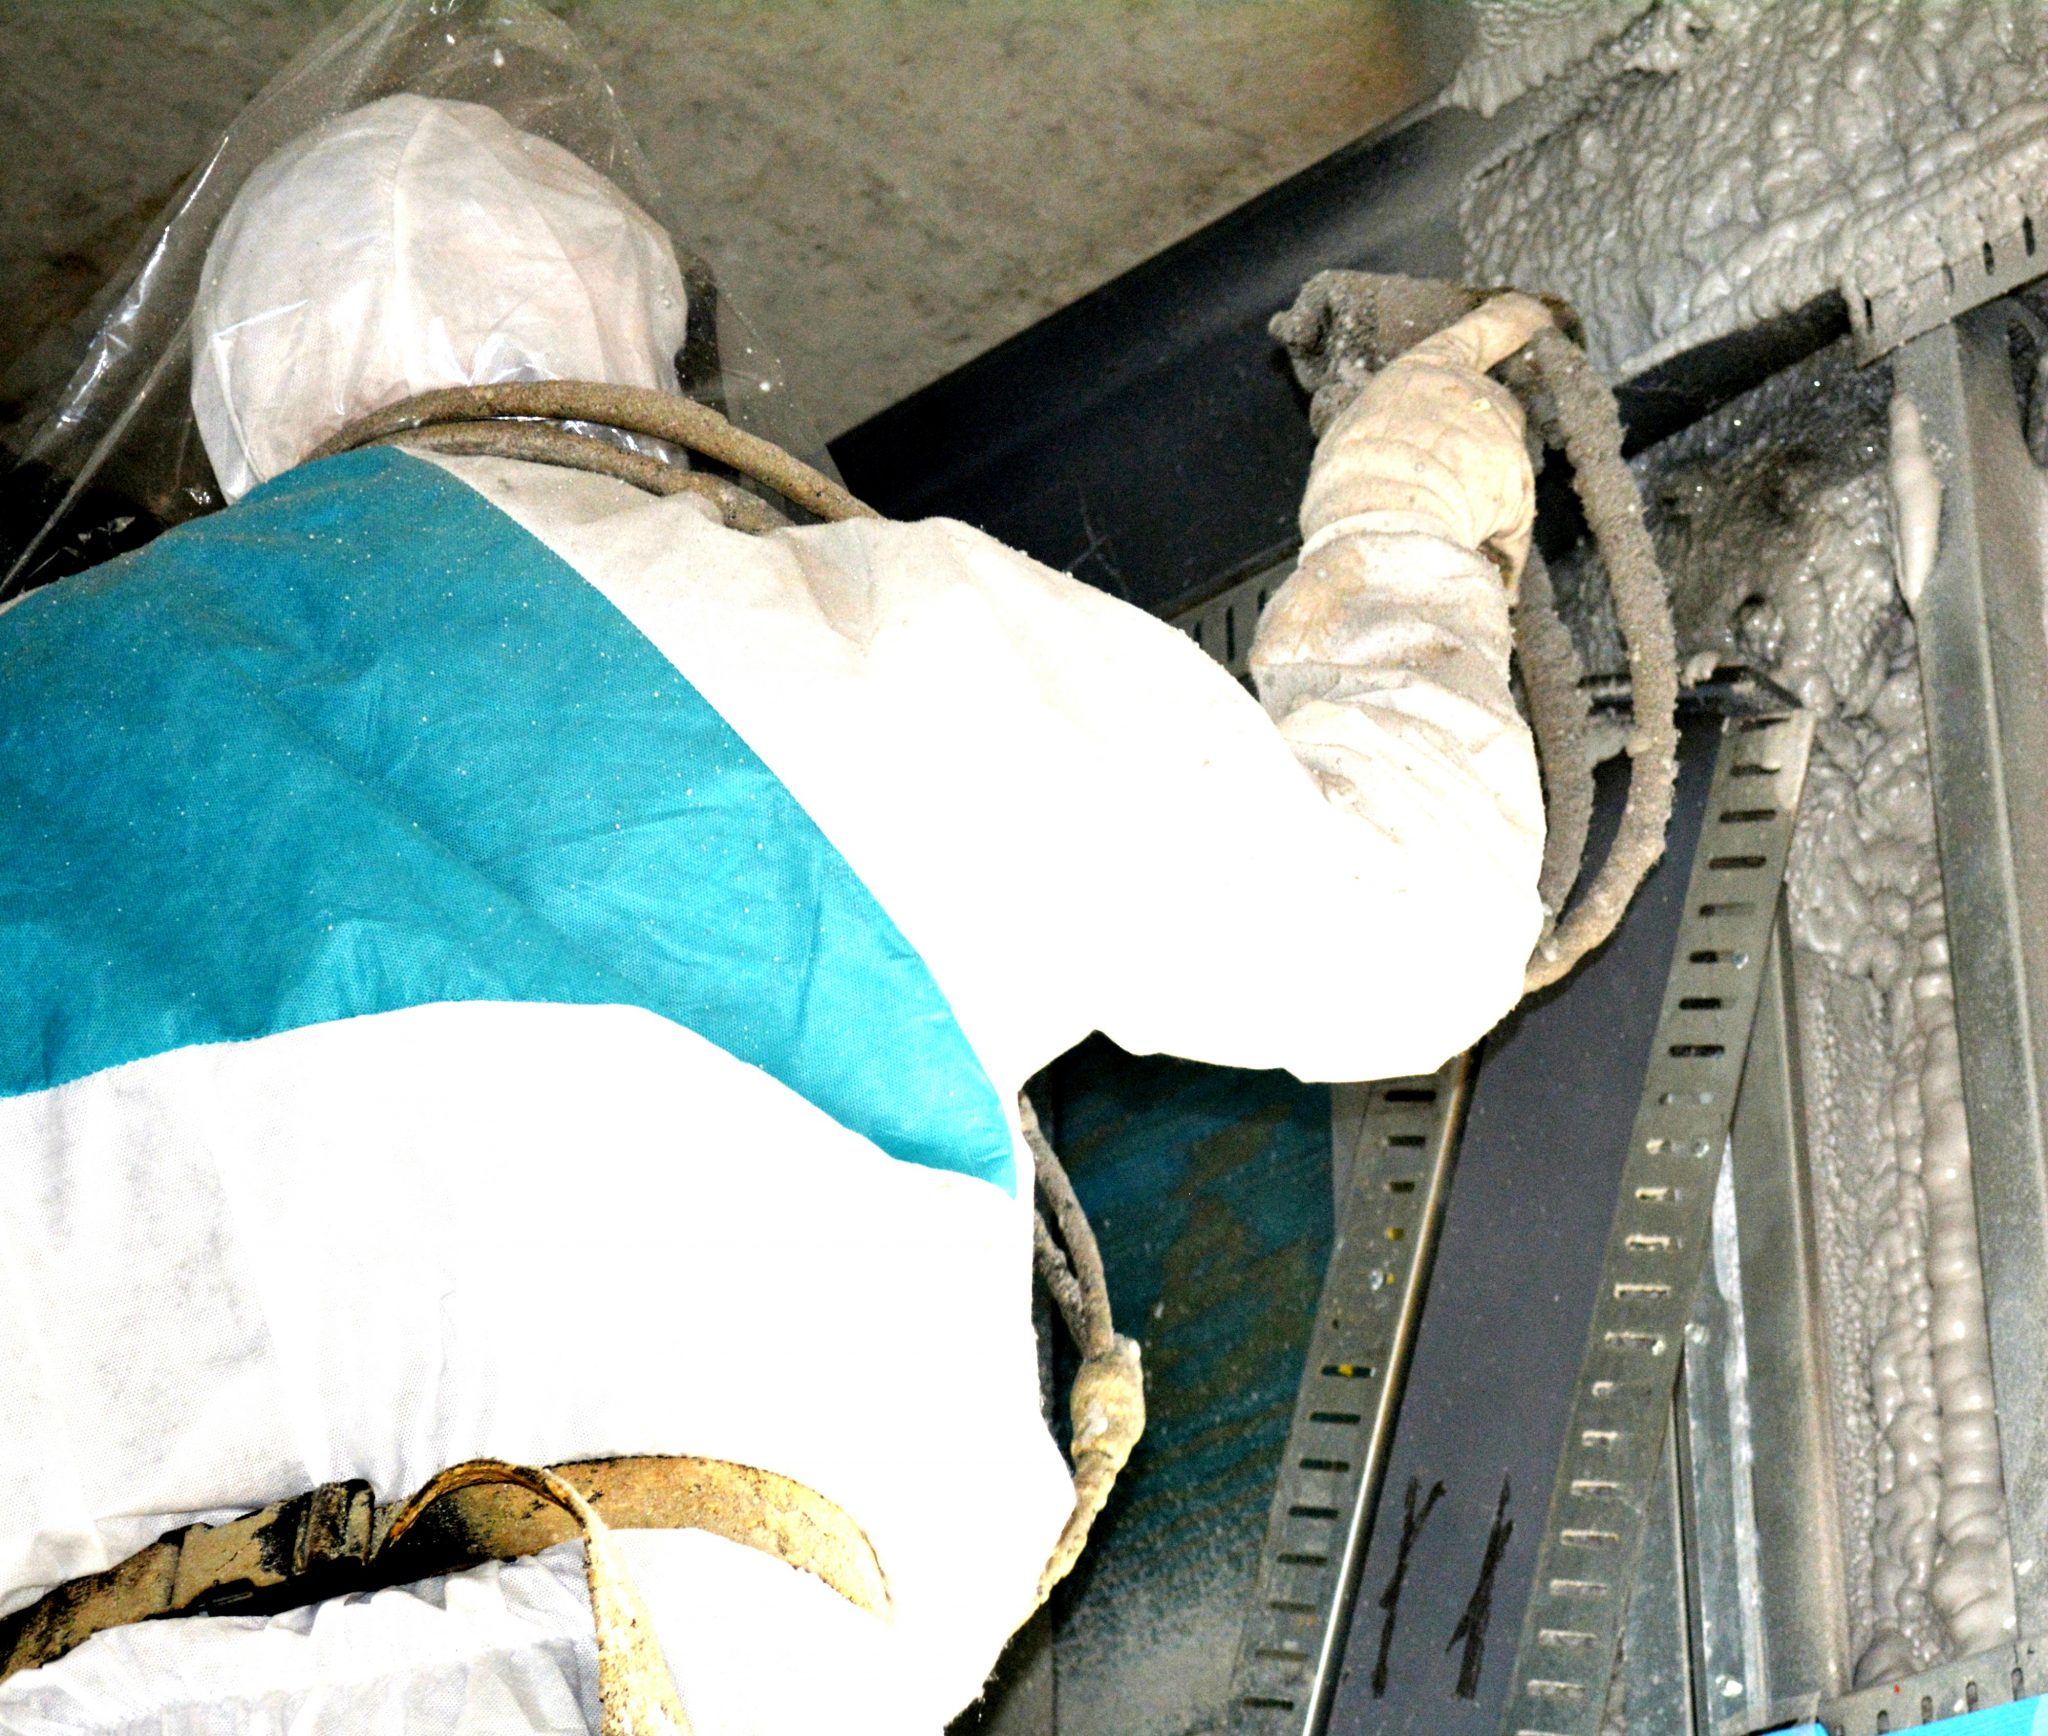 Your insulation needs replacing? Spray Foam is a great alternative.